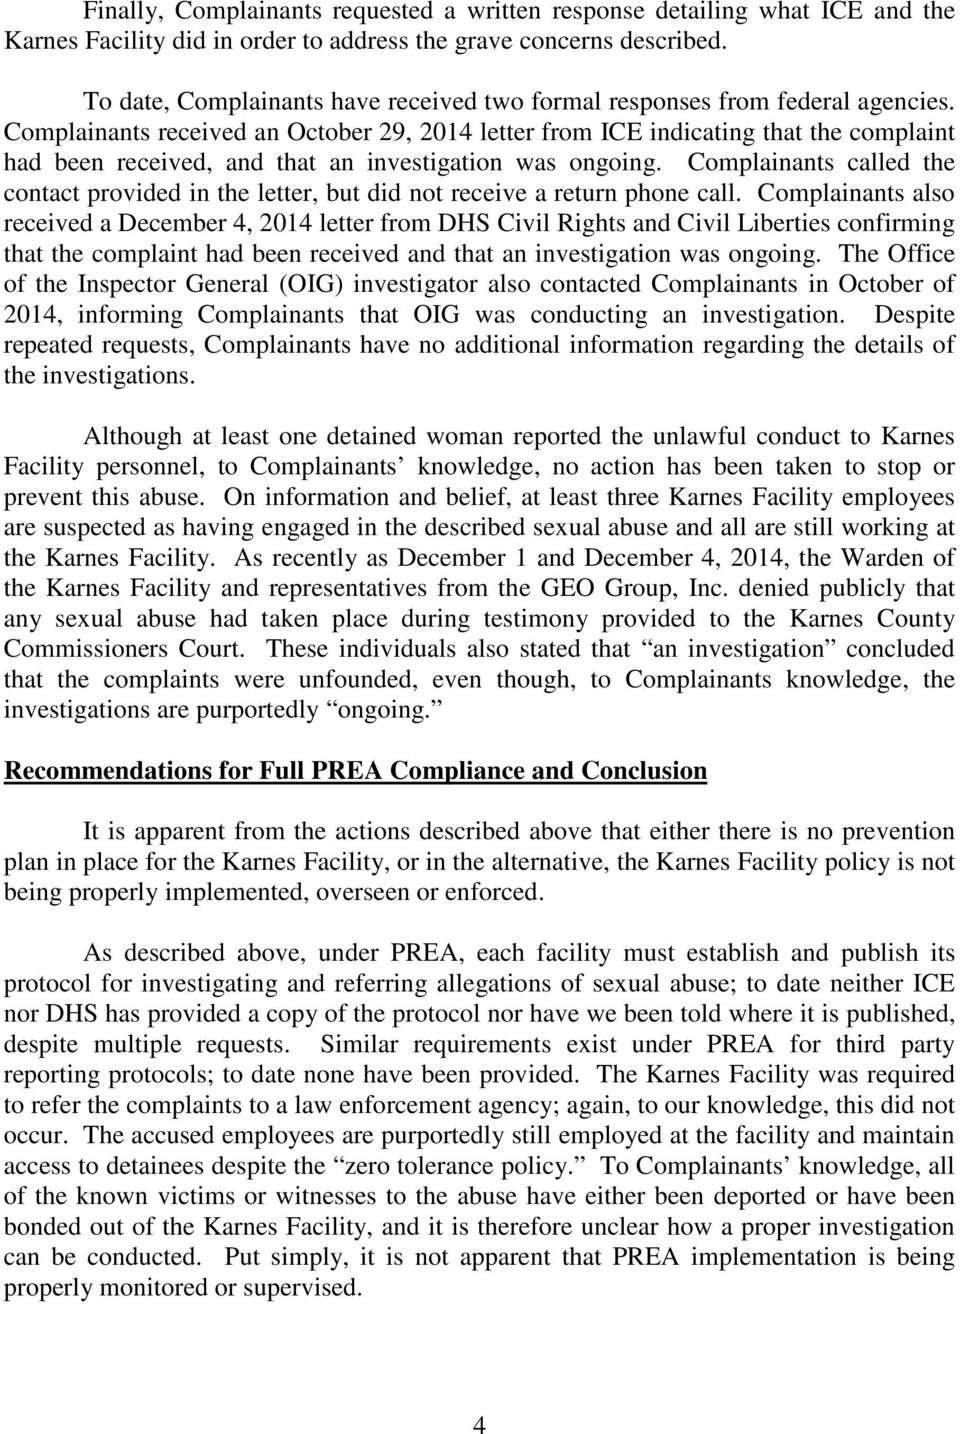 Complainants received an October 29, 2014 letter from ICE indicating that the complaint had been received, and that an investigation was ongoing.